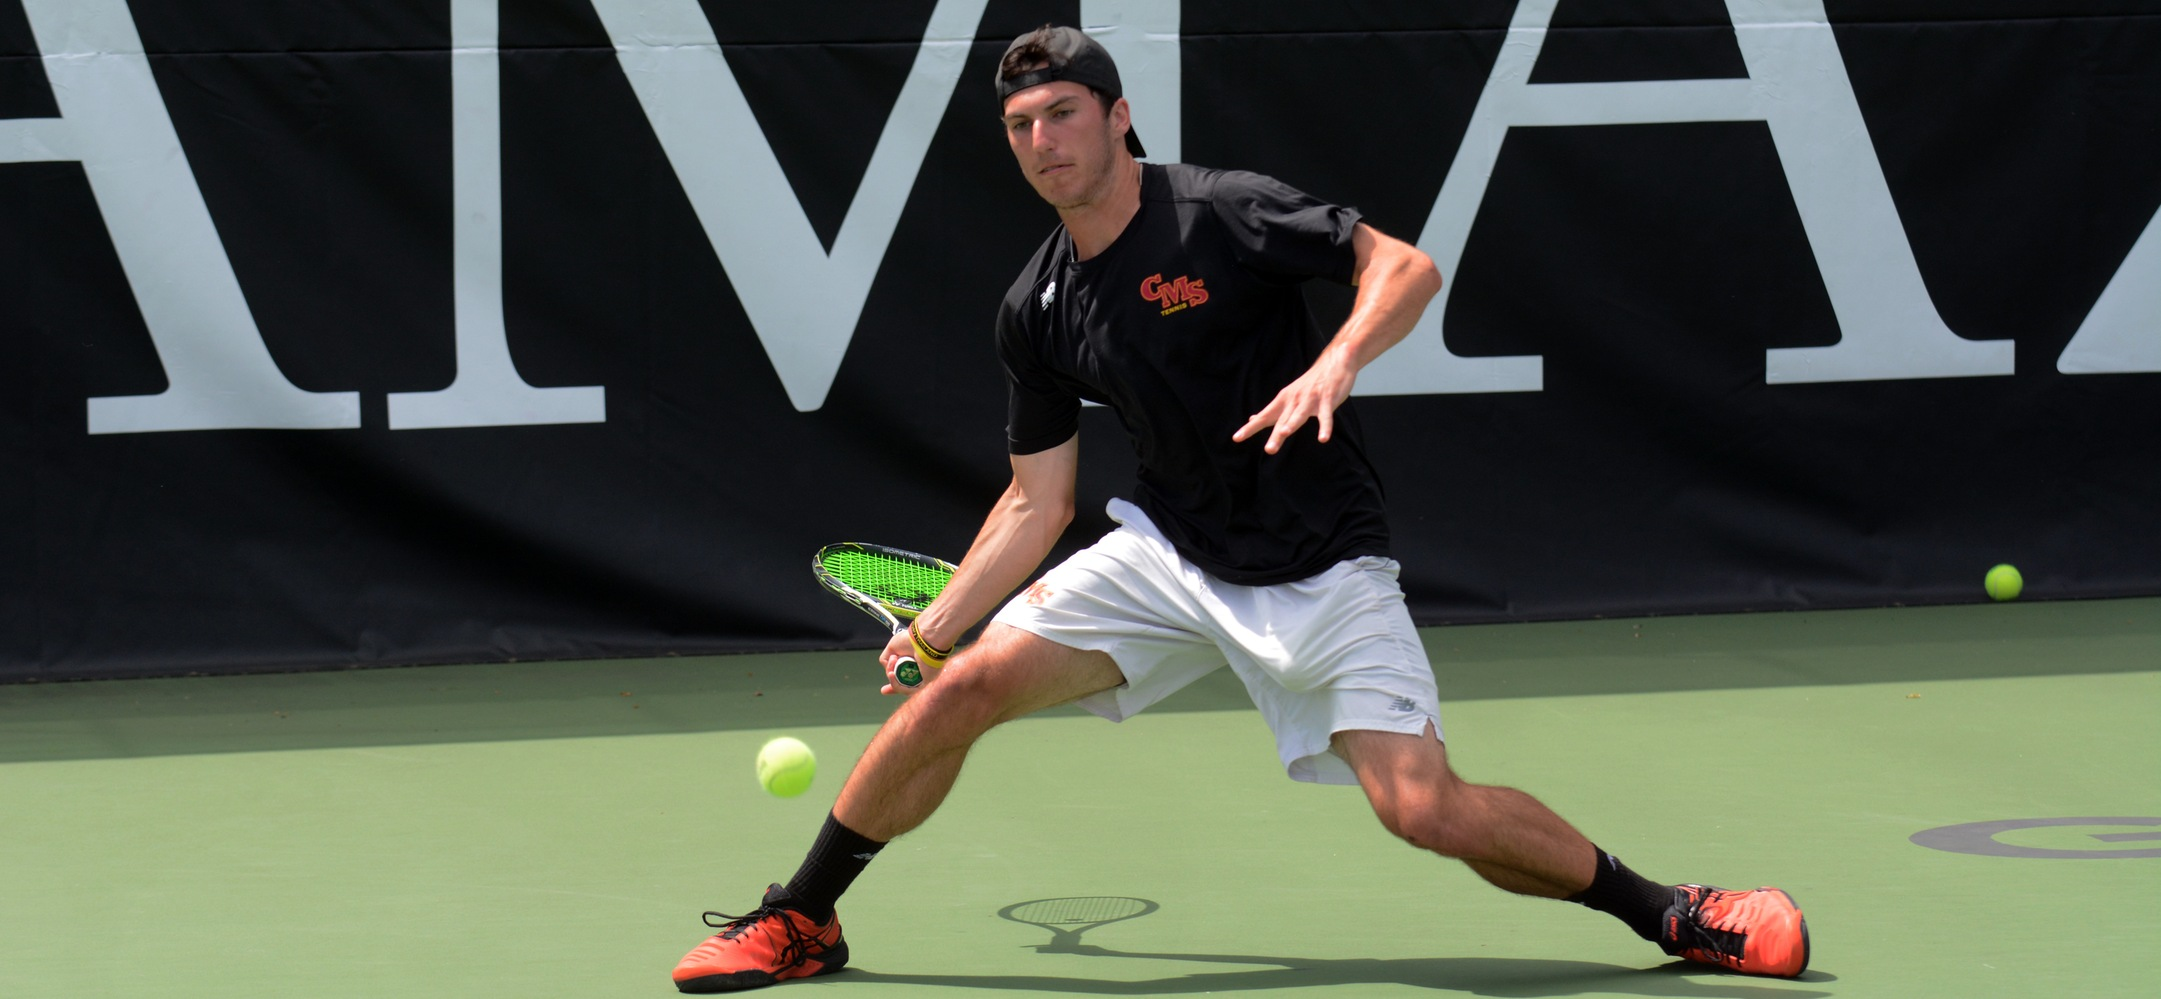 Nikolai Parodi's NCAA Singles Run Ends in Quarterfinal Round for CMS Men's Tennis